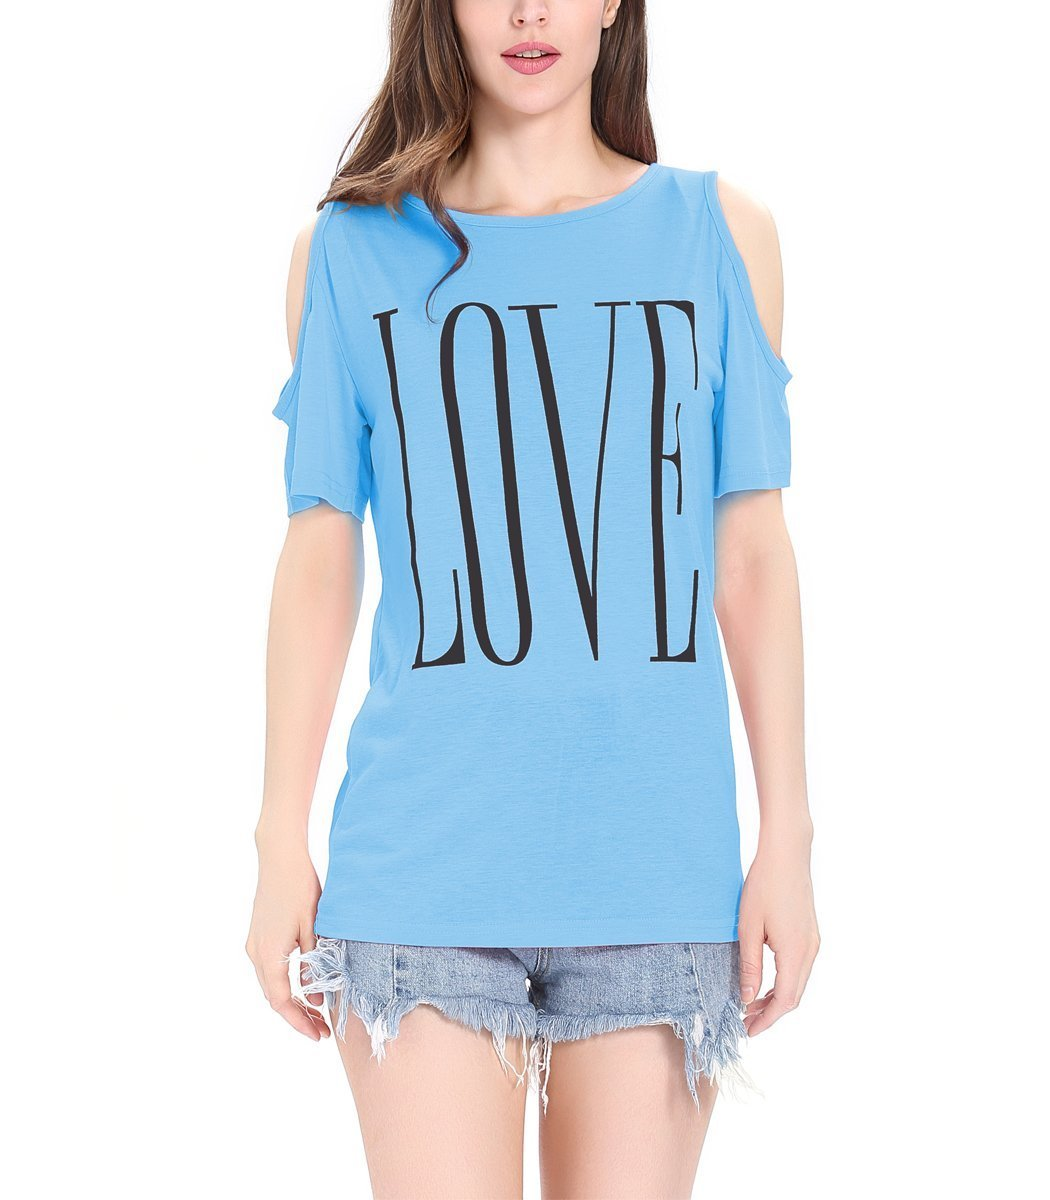 Finyosee Women's Cute Cold Shoulder, Round Neck, Short Sleeve Tops, Base T-Shirt Love Print (Medium, Blue)